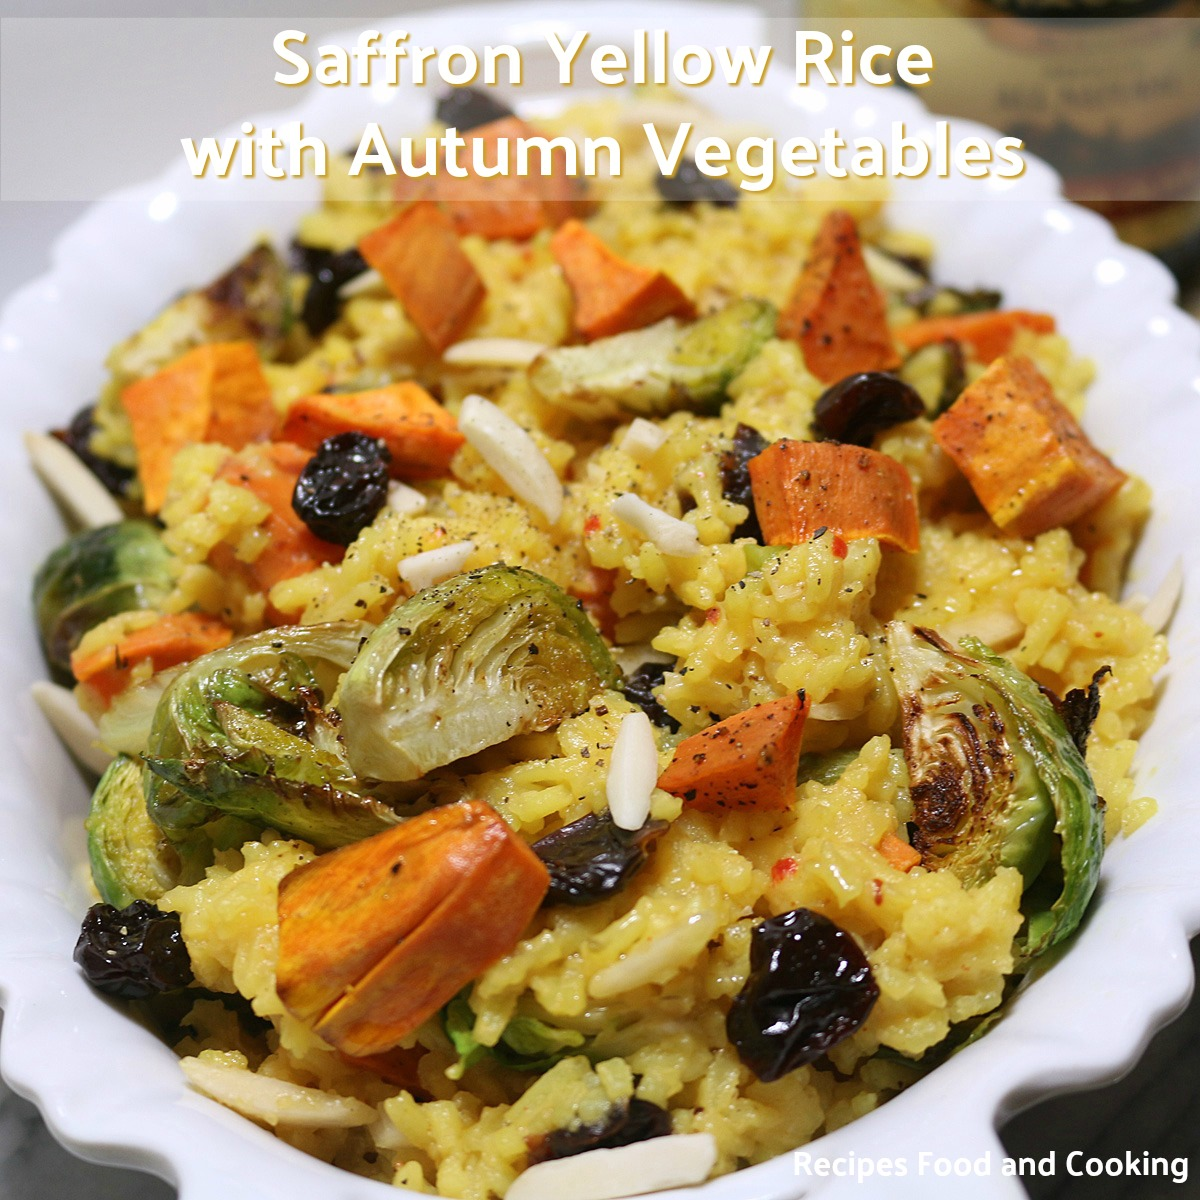 Saffron Yellow Rice with Autumn Vegetables